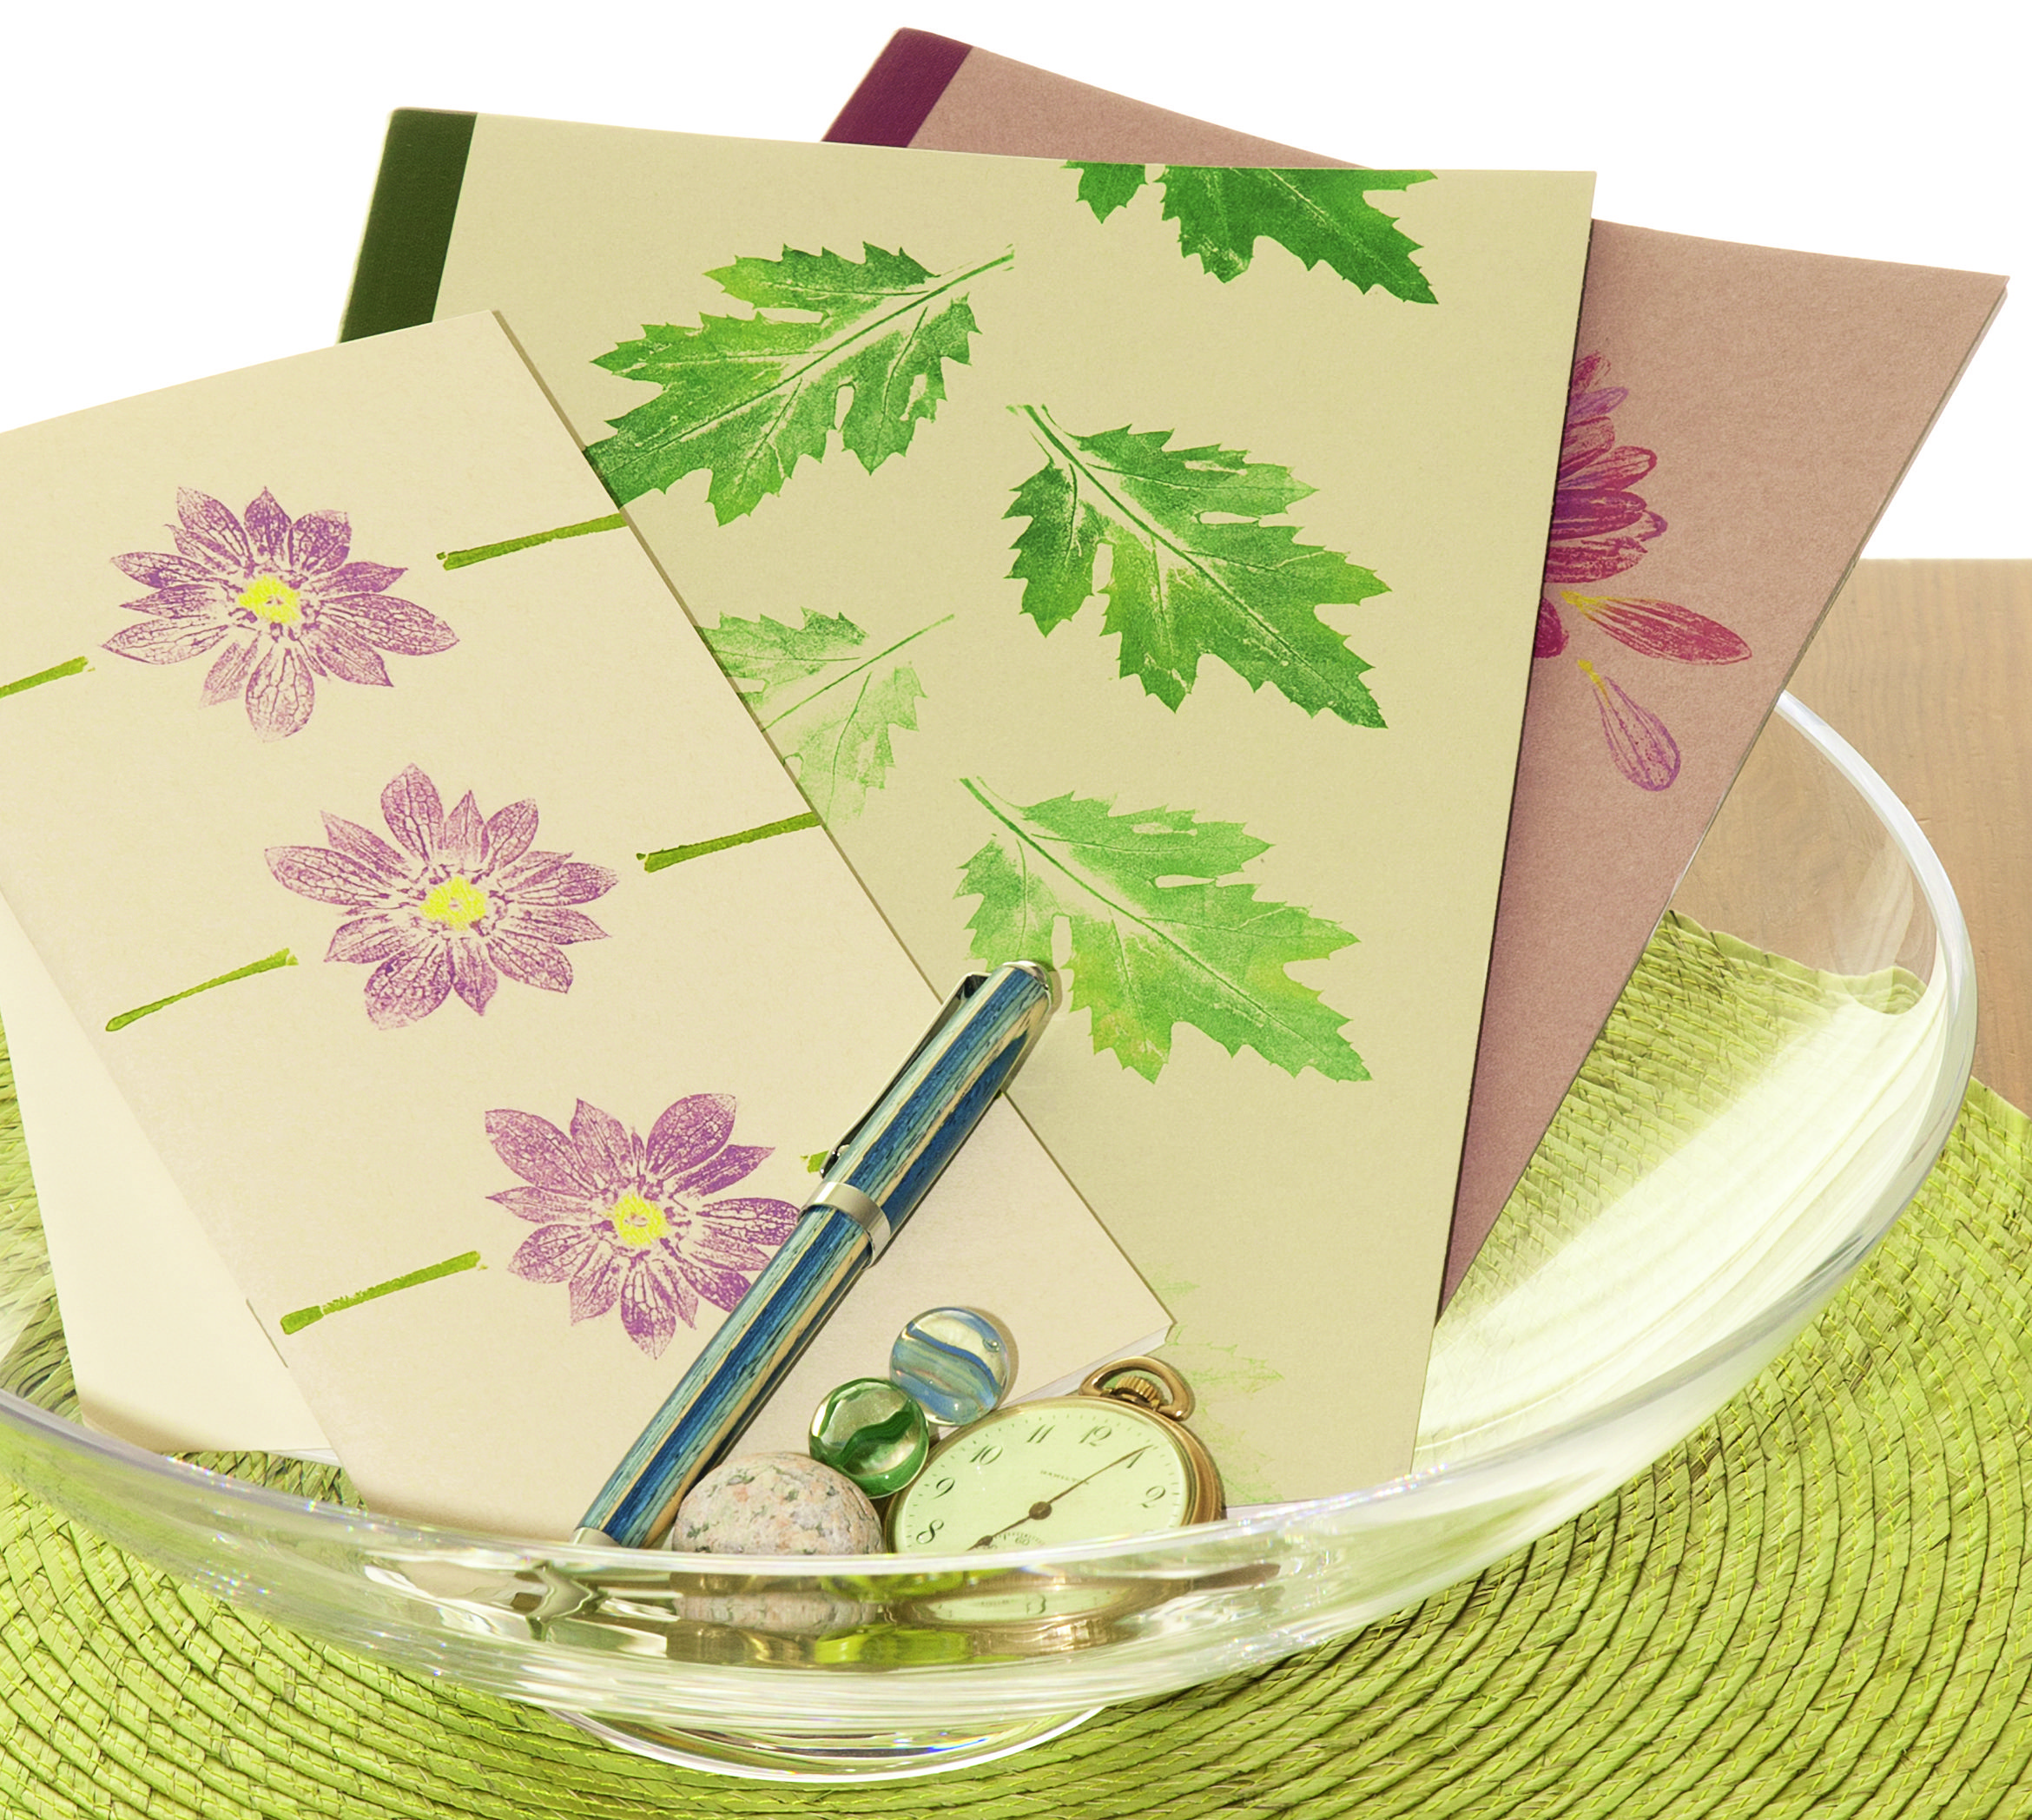 69_ Notebooks, ink, nature prints of flowers and leaves on paper - (c) Laura Donnelly Bethmann